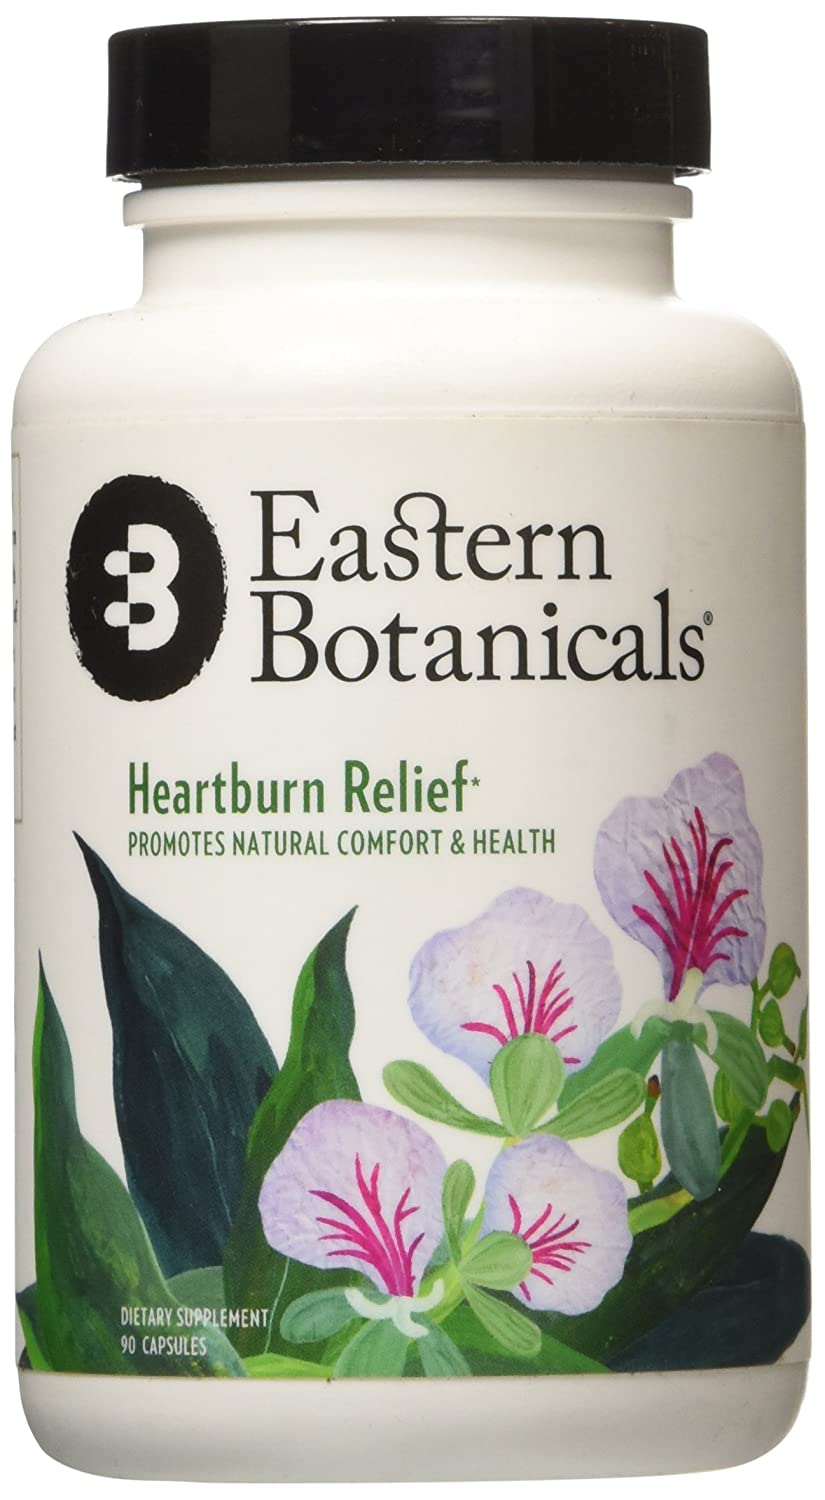 Amazon.com: Eastern Botanicals Natural Heartburn Relief Supplement, Balanced Acid Supports Against Bloating, Stomach Cramps, Indigestion Pain, ...